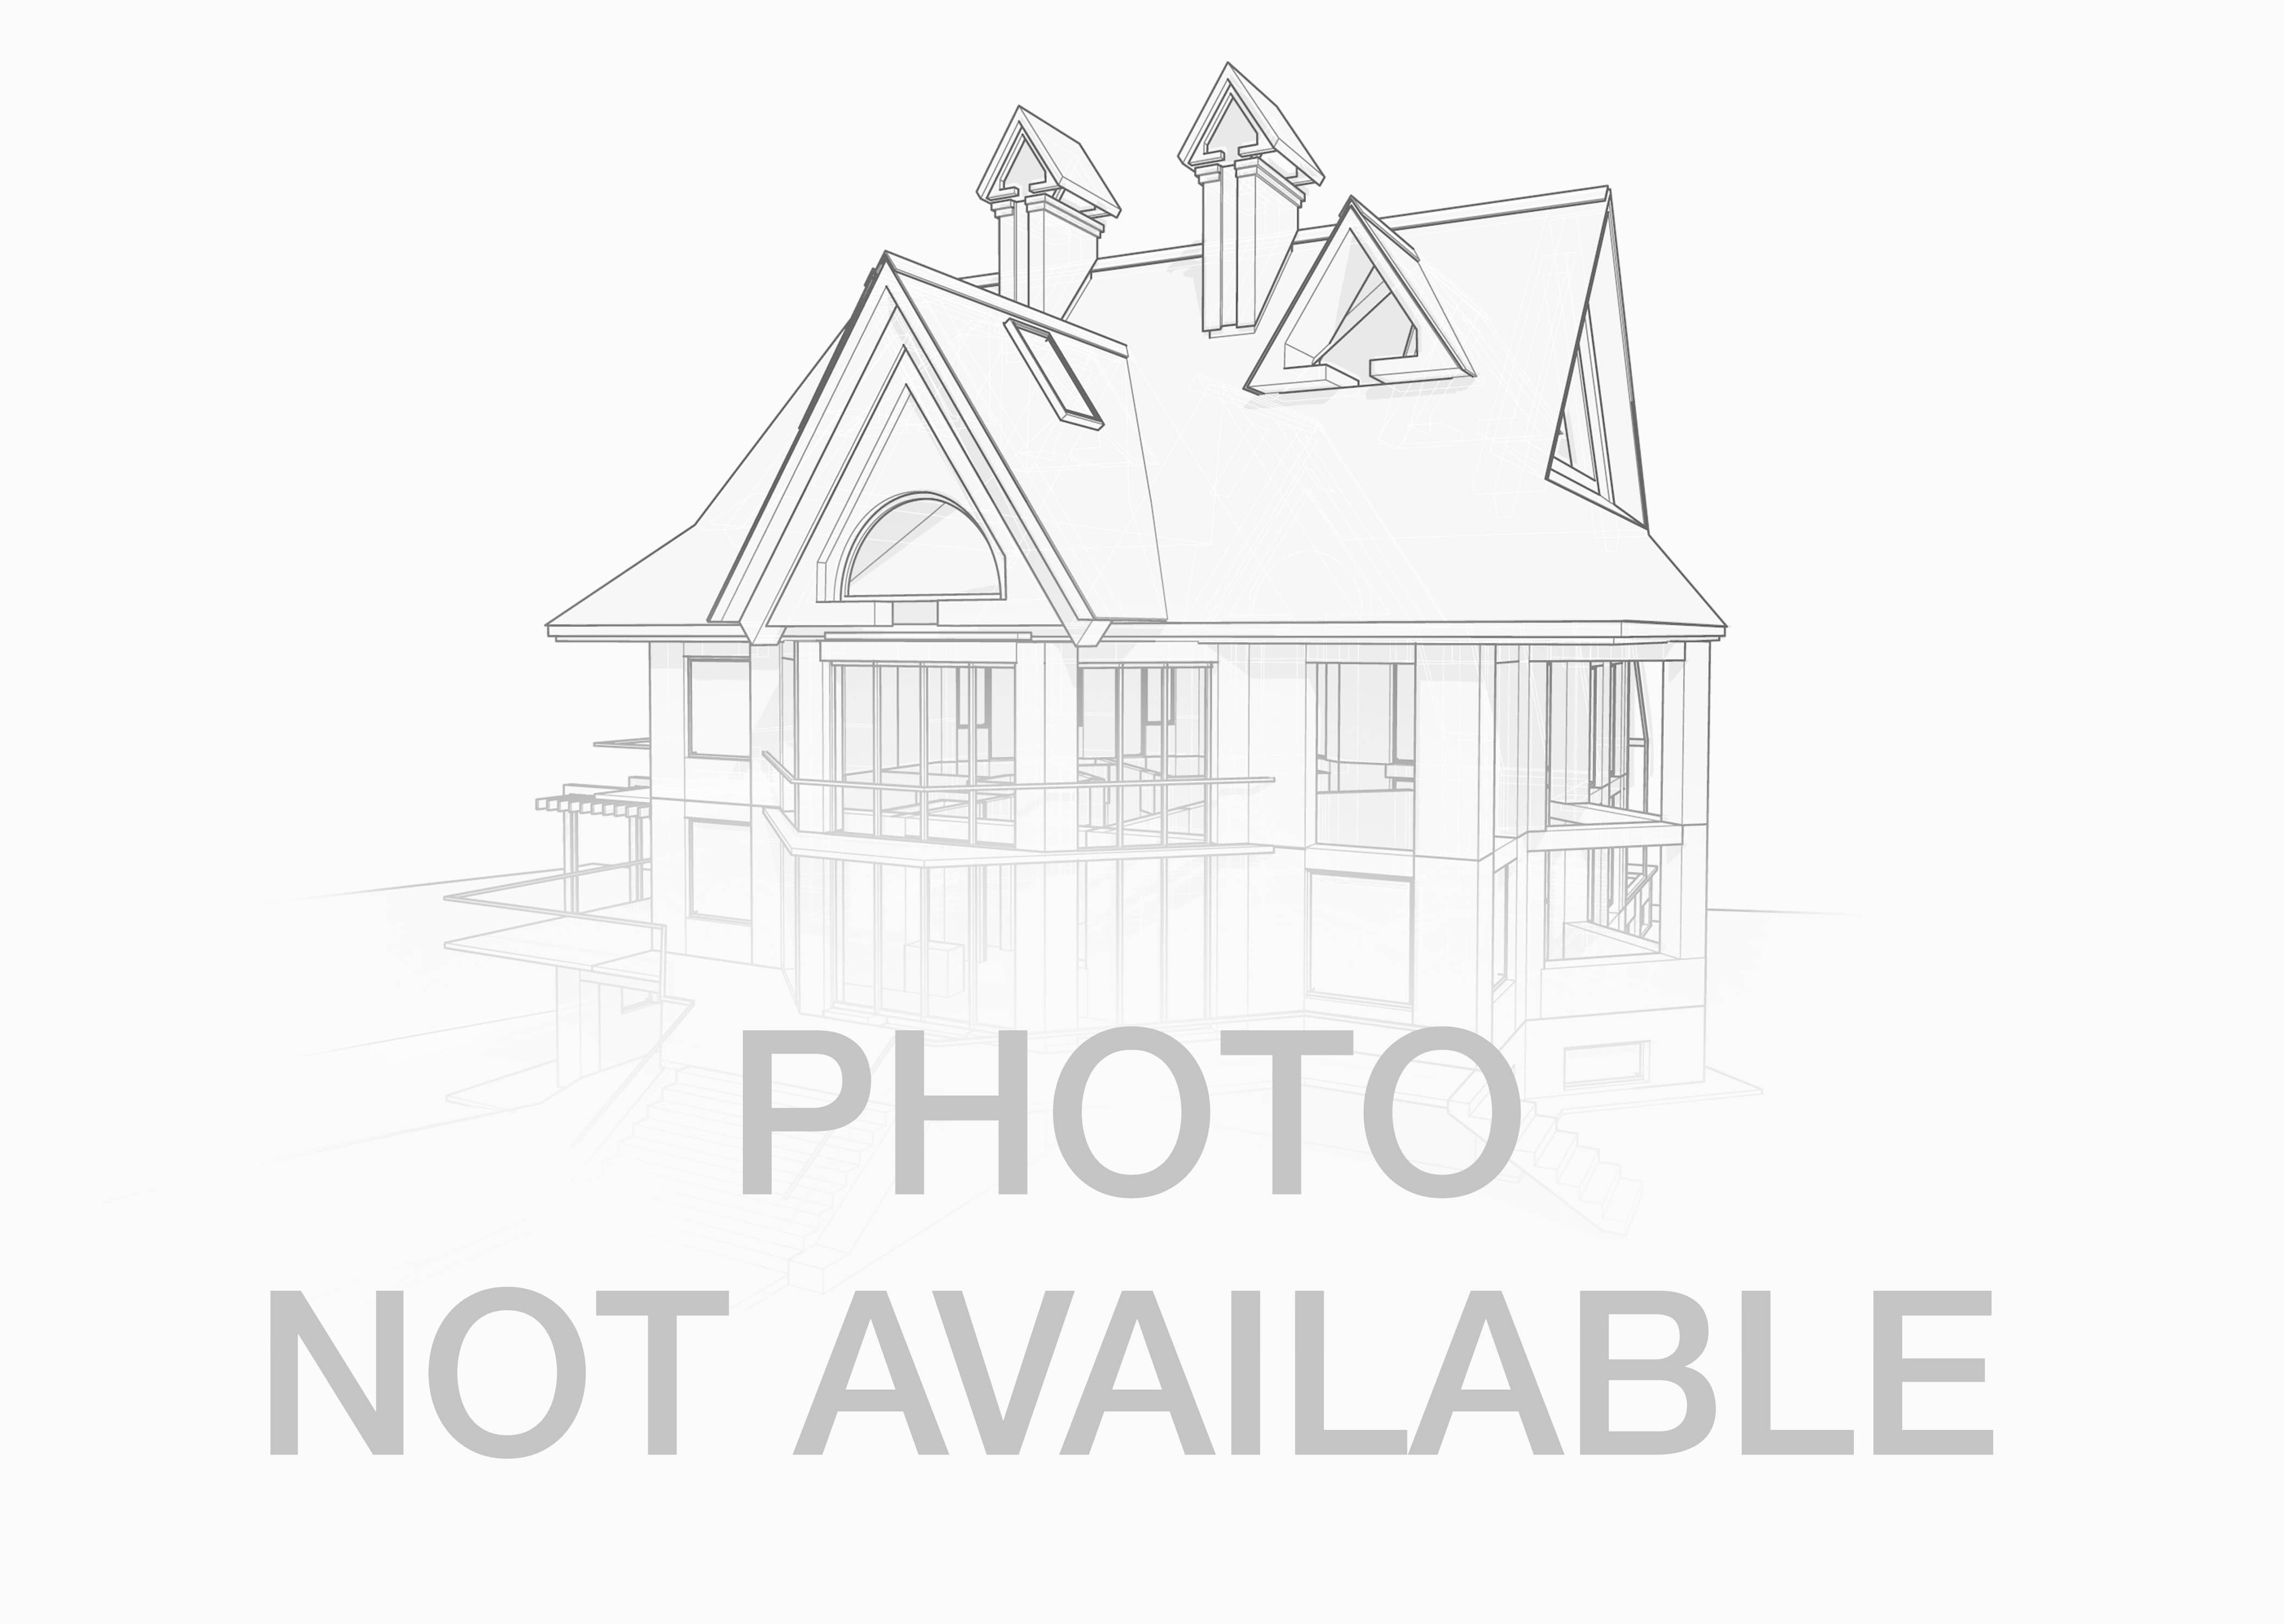 lutherville timonium lesbian singles For sale: 5 bed, 3 bath ∙ 4225 sq ft ∙ 325 morris ave, lutherville timonium, md 21093 ∙ $489,000 ∙ mls# bc10229517 ∙ circa 1856 ten-gable historic victorian surrounded by deciduous trees.